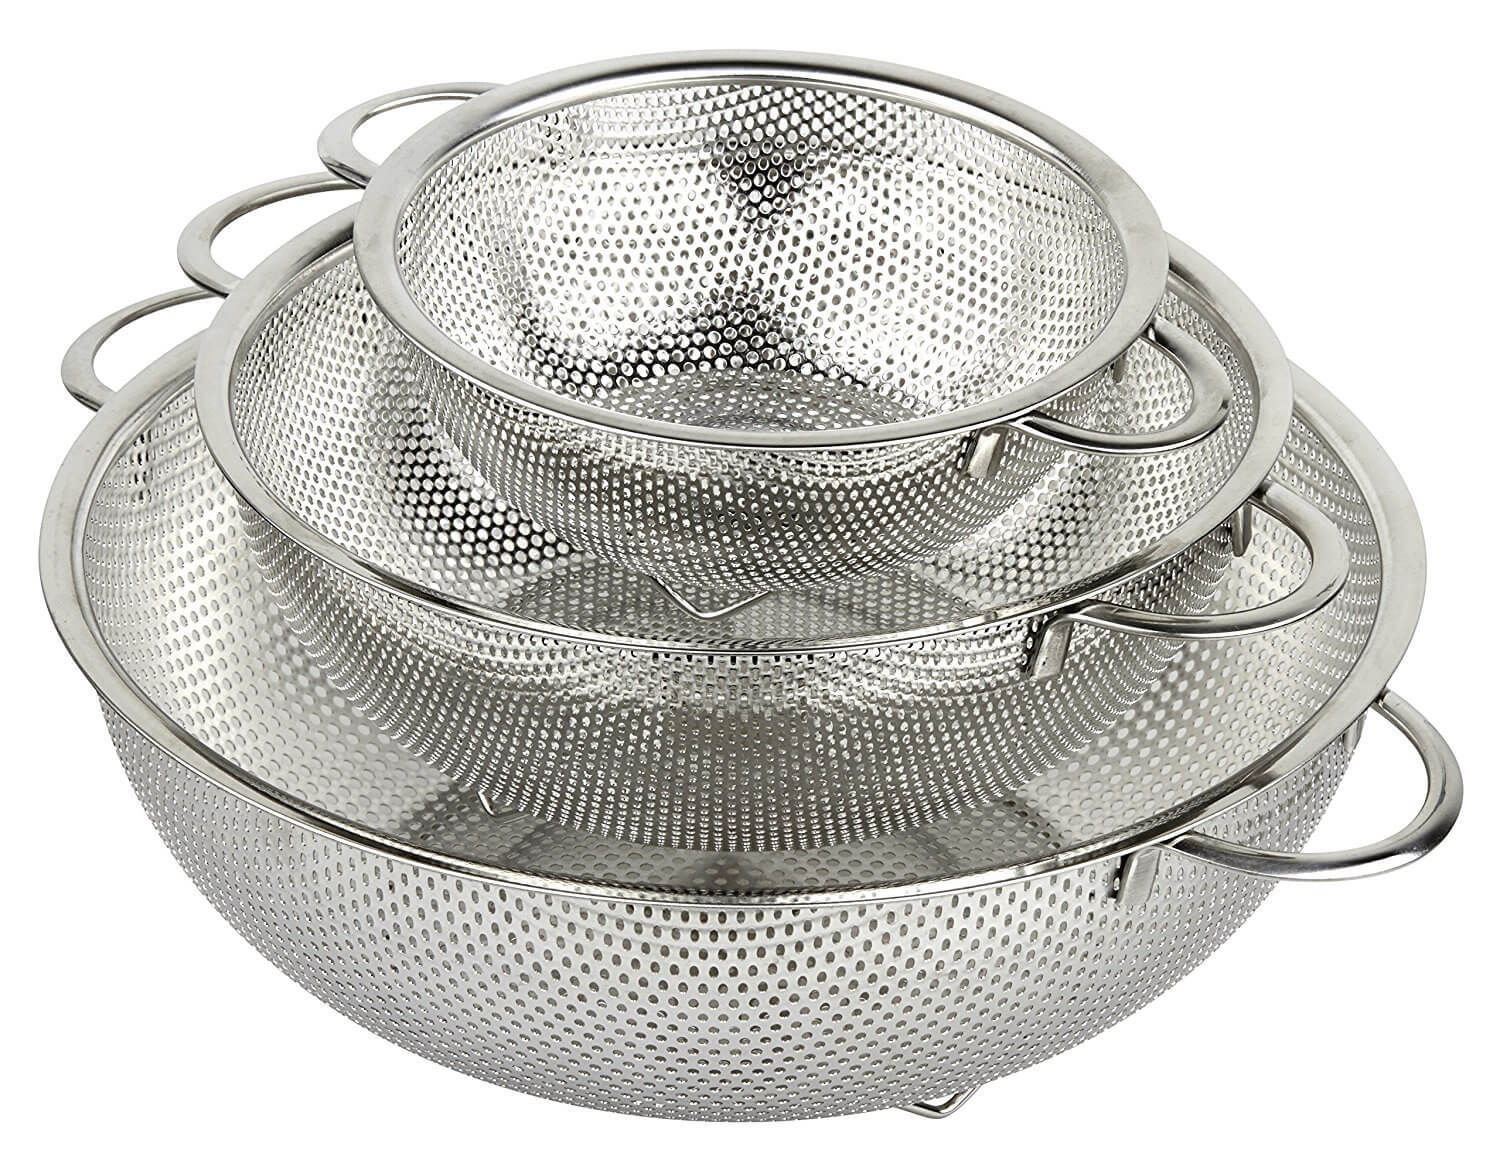 HOLM Stainless Steel Perforated Strainer